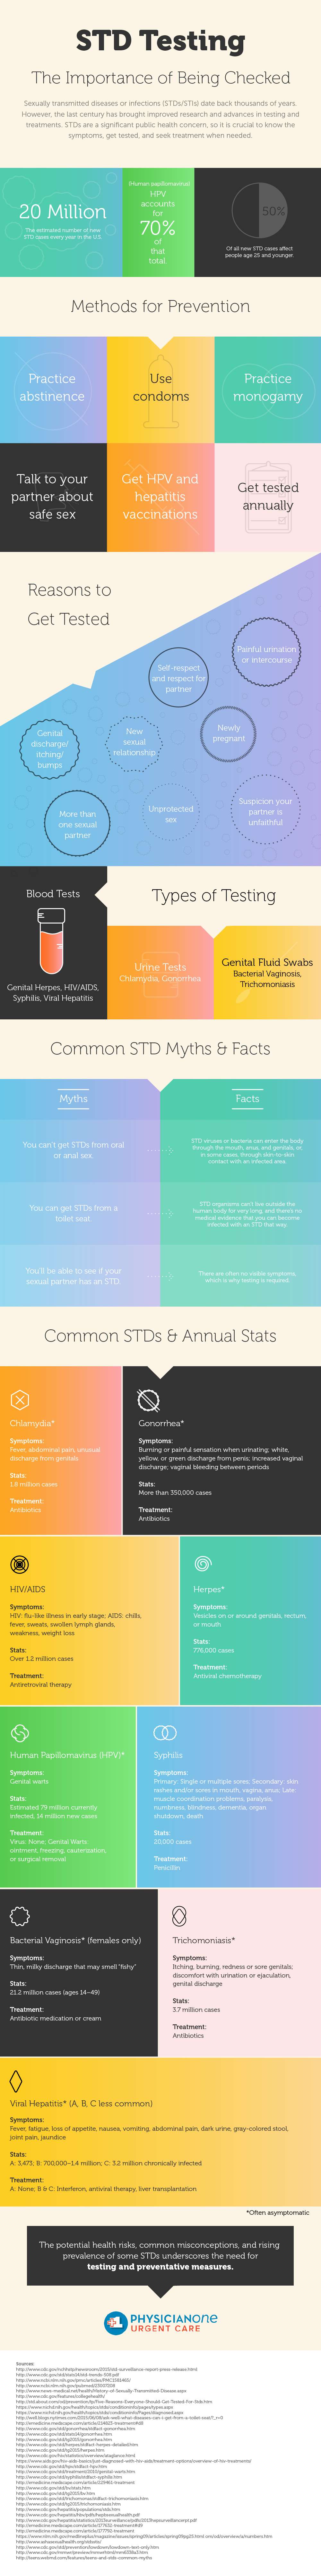 STD Testing & The Importance of Being Checked